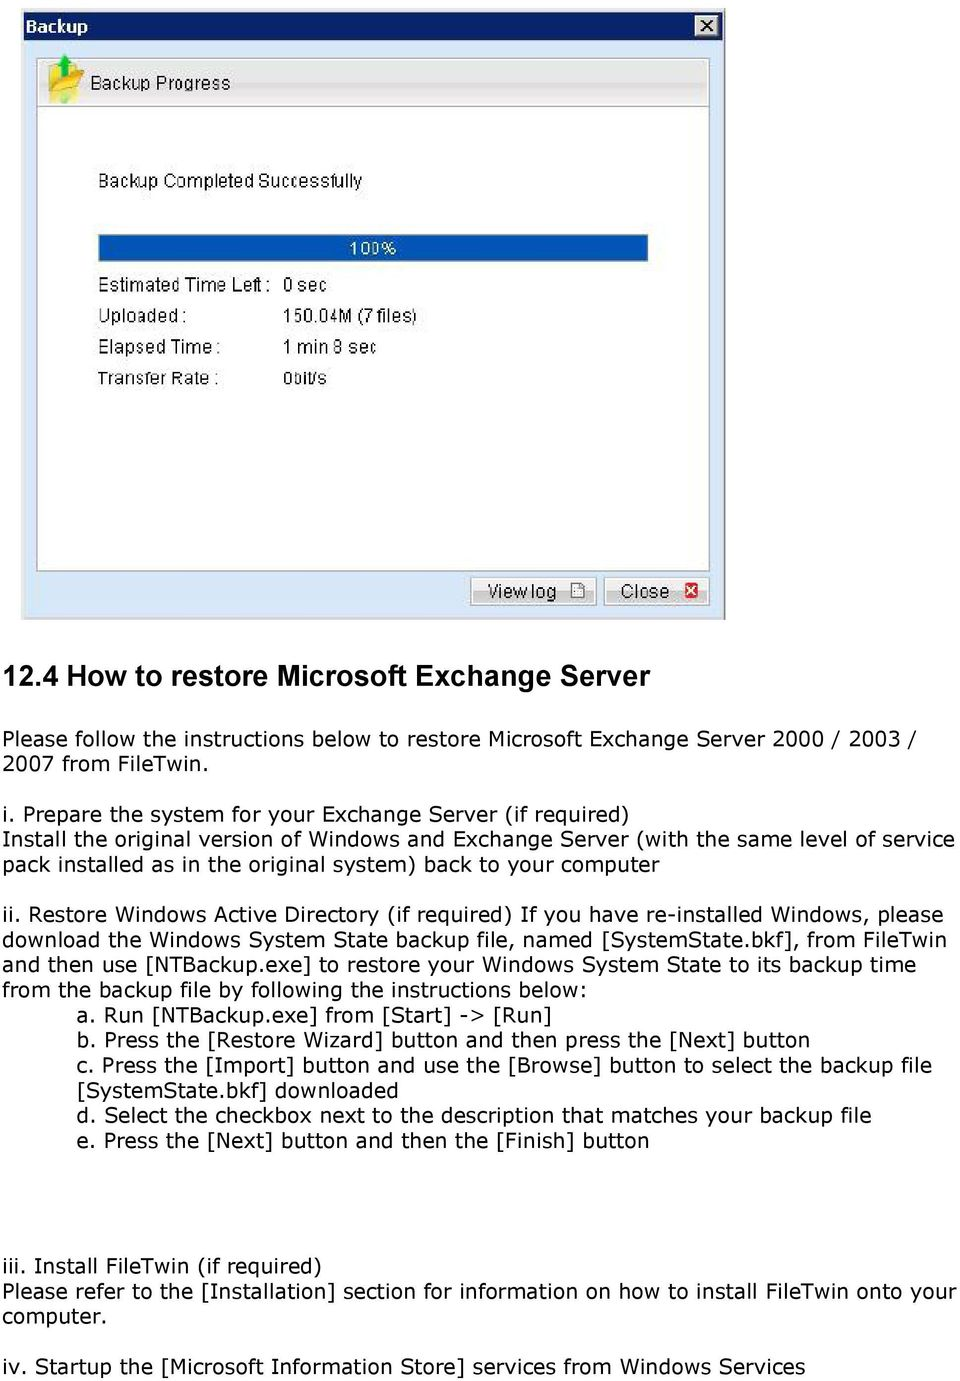 Prepare the system for your Exchange Server (if required) Install the original version of Windows and Exchange Server (with the same level of service pack installed as in the original system) back to